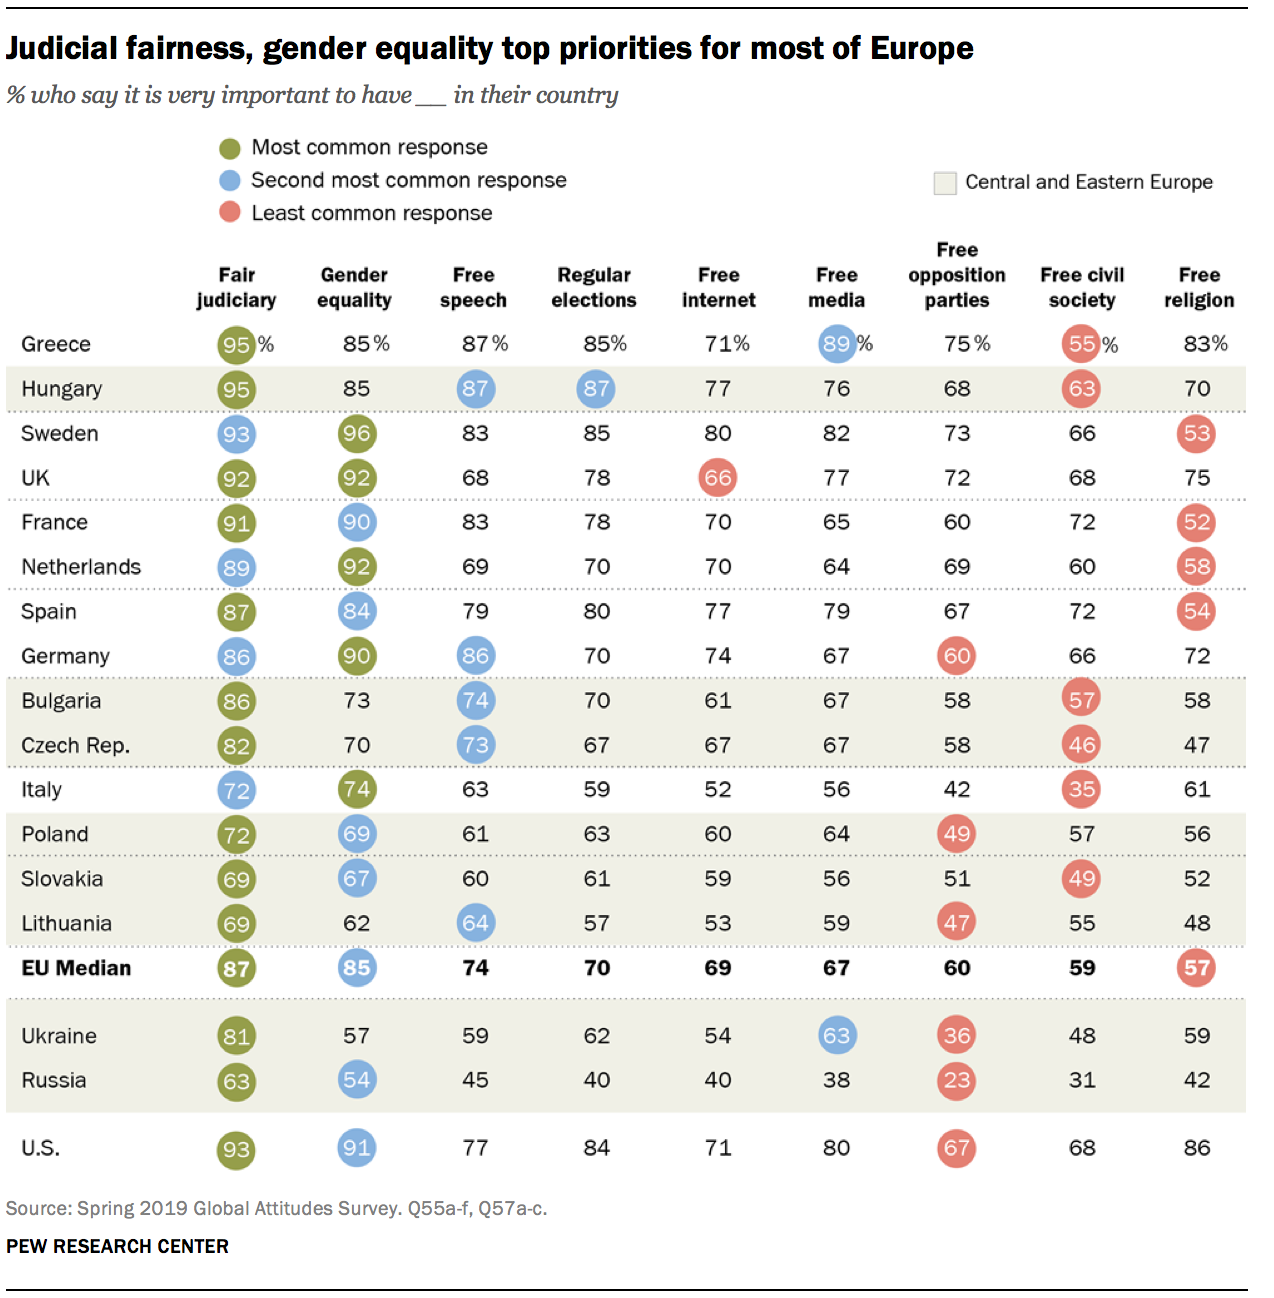 Judicial fairness, gender equality top priorities for most of Europe